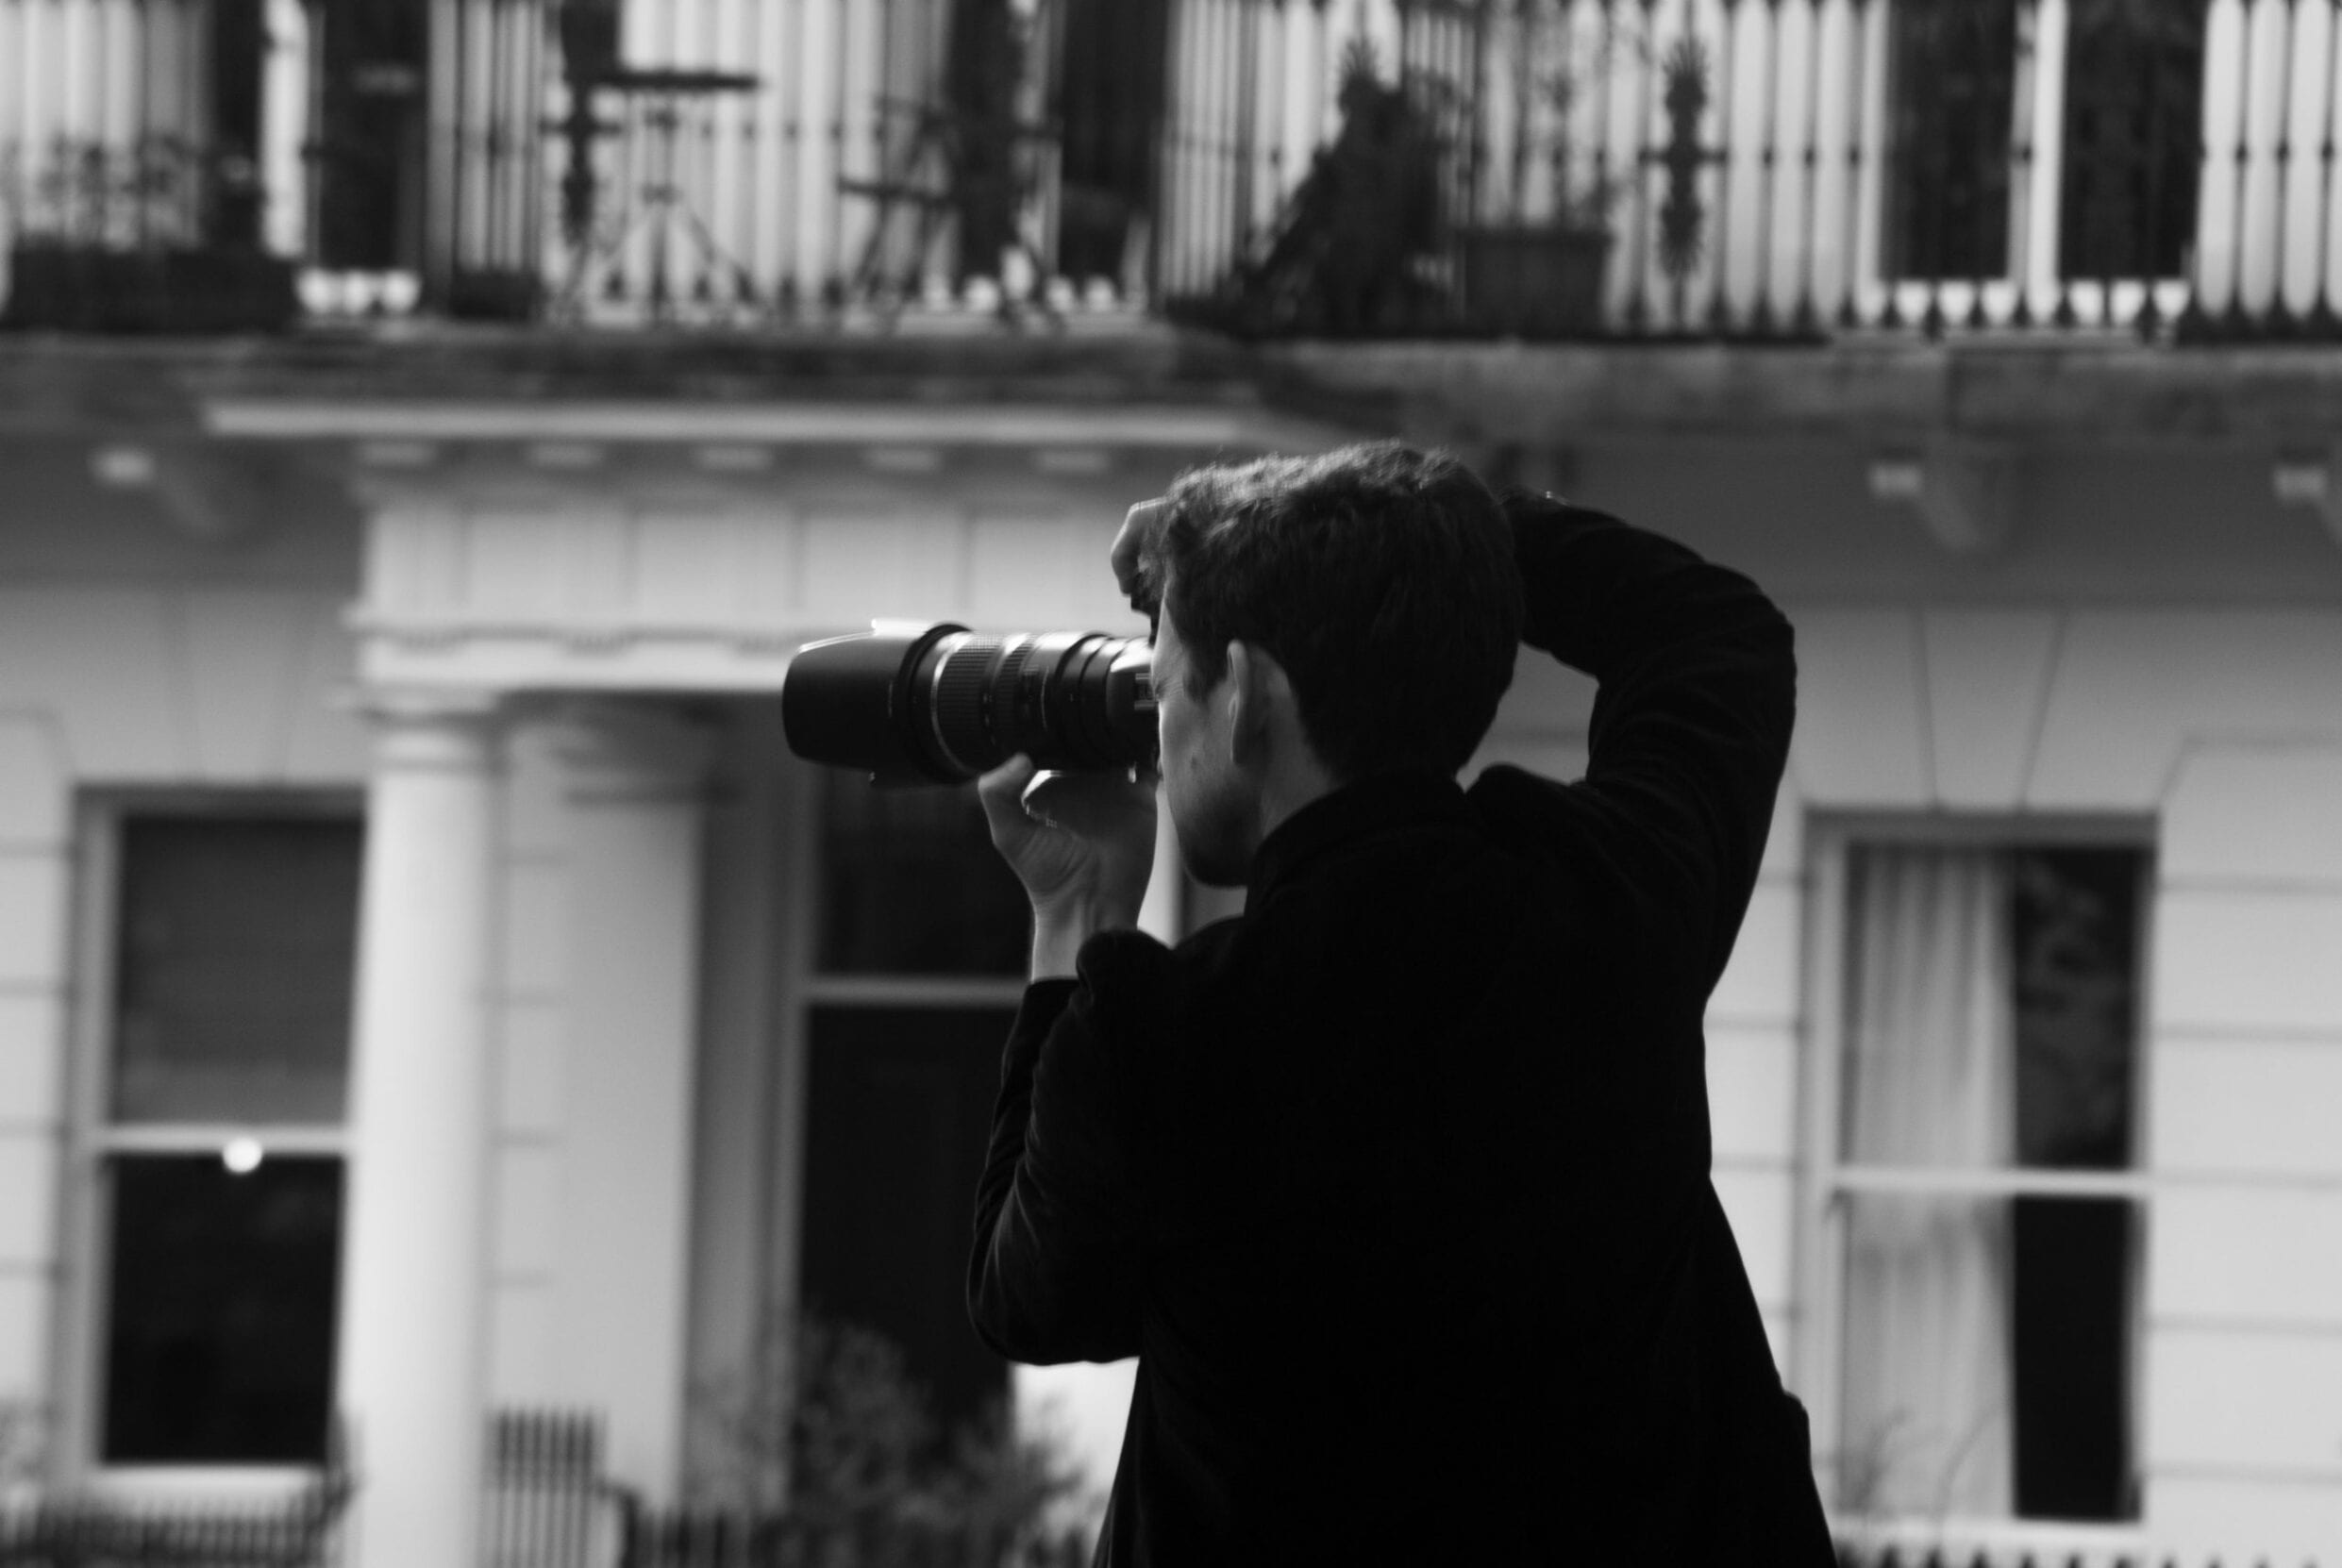 A man holds a camera with big white houses in the background